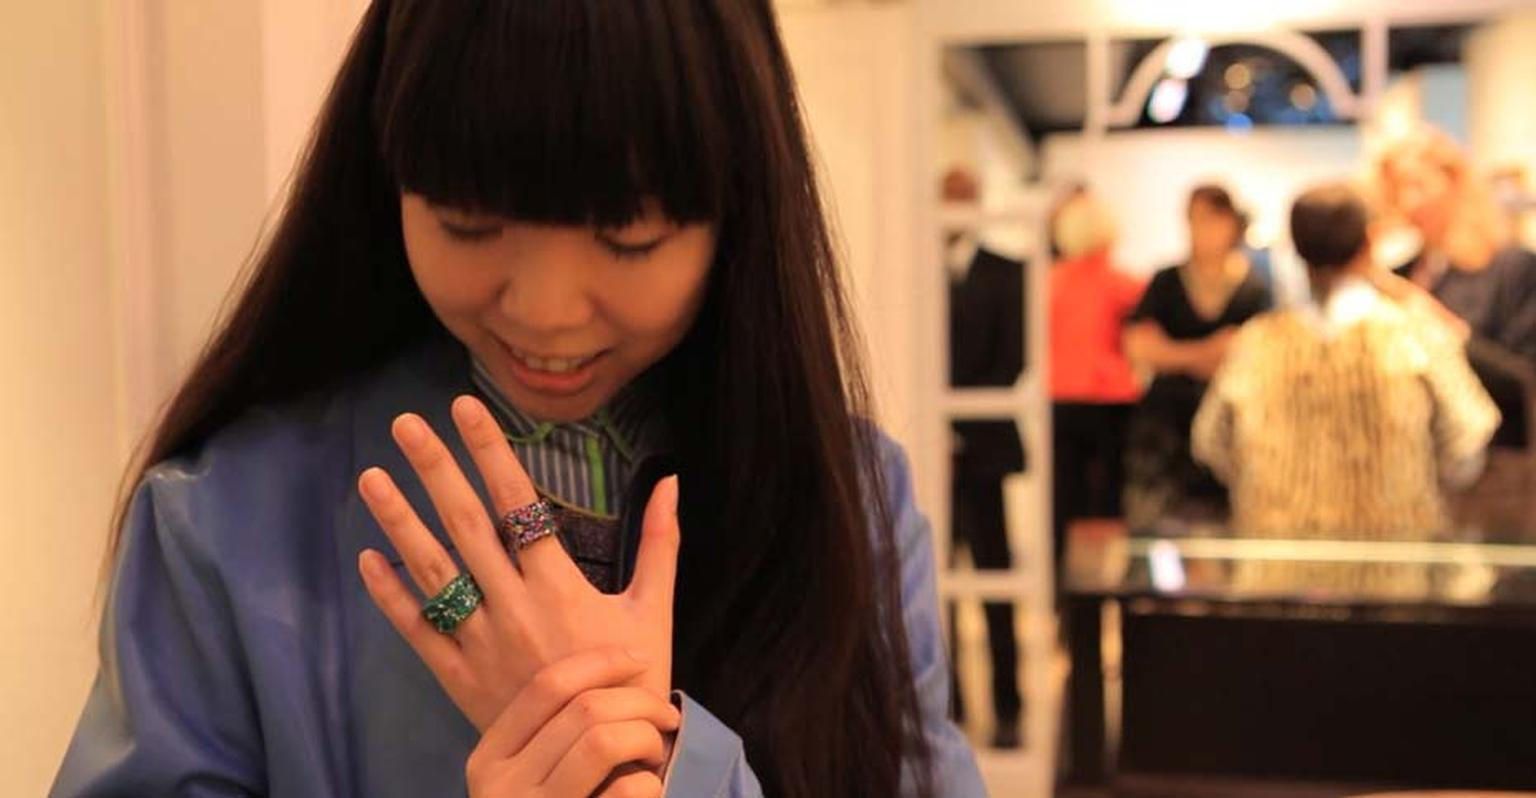 Renowned fashion blogger Susie Bubble shows off Fabergé's Emotion rings.